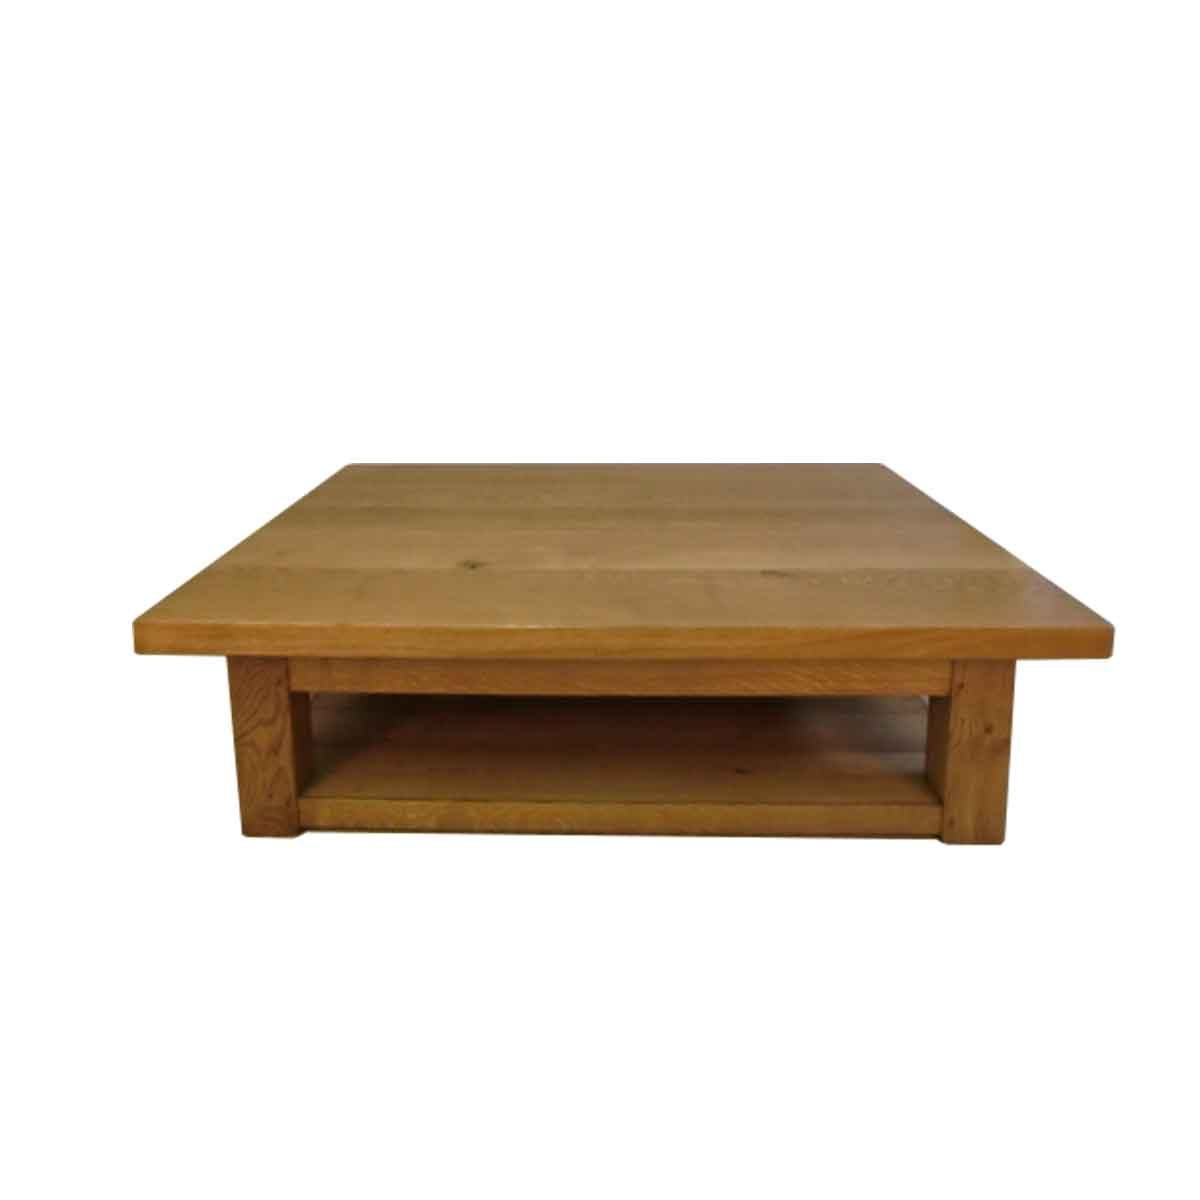 Bespoke Large Coffee Table Handcrafted in Suffolk